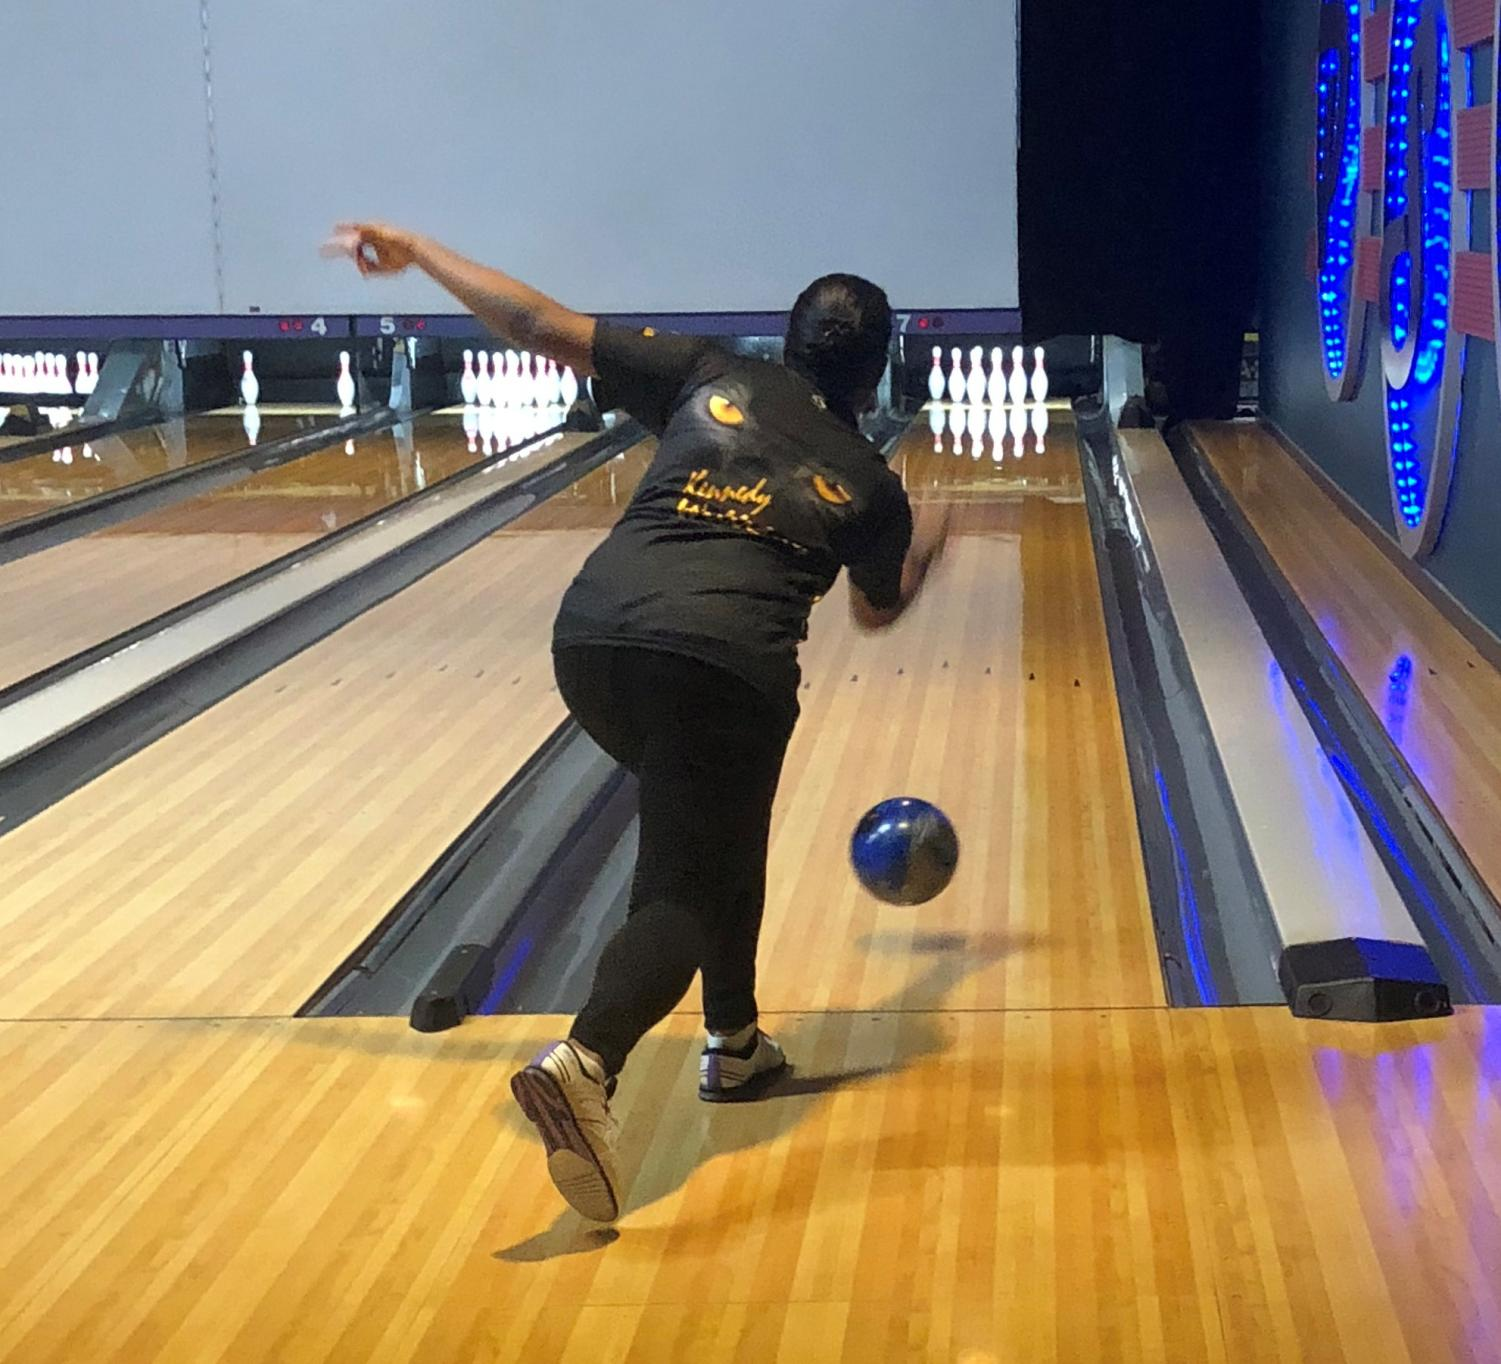 Senior and JV bowler Kennedy Williams launches a ball down the lane at Plano Super Bowl during the Panther Bowlers CARE project on Feb. 18.